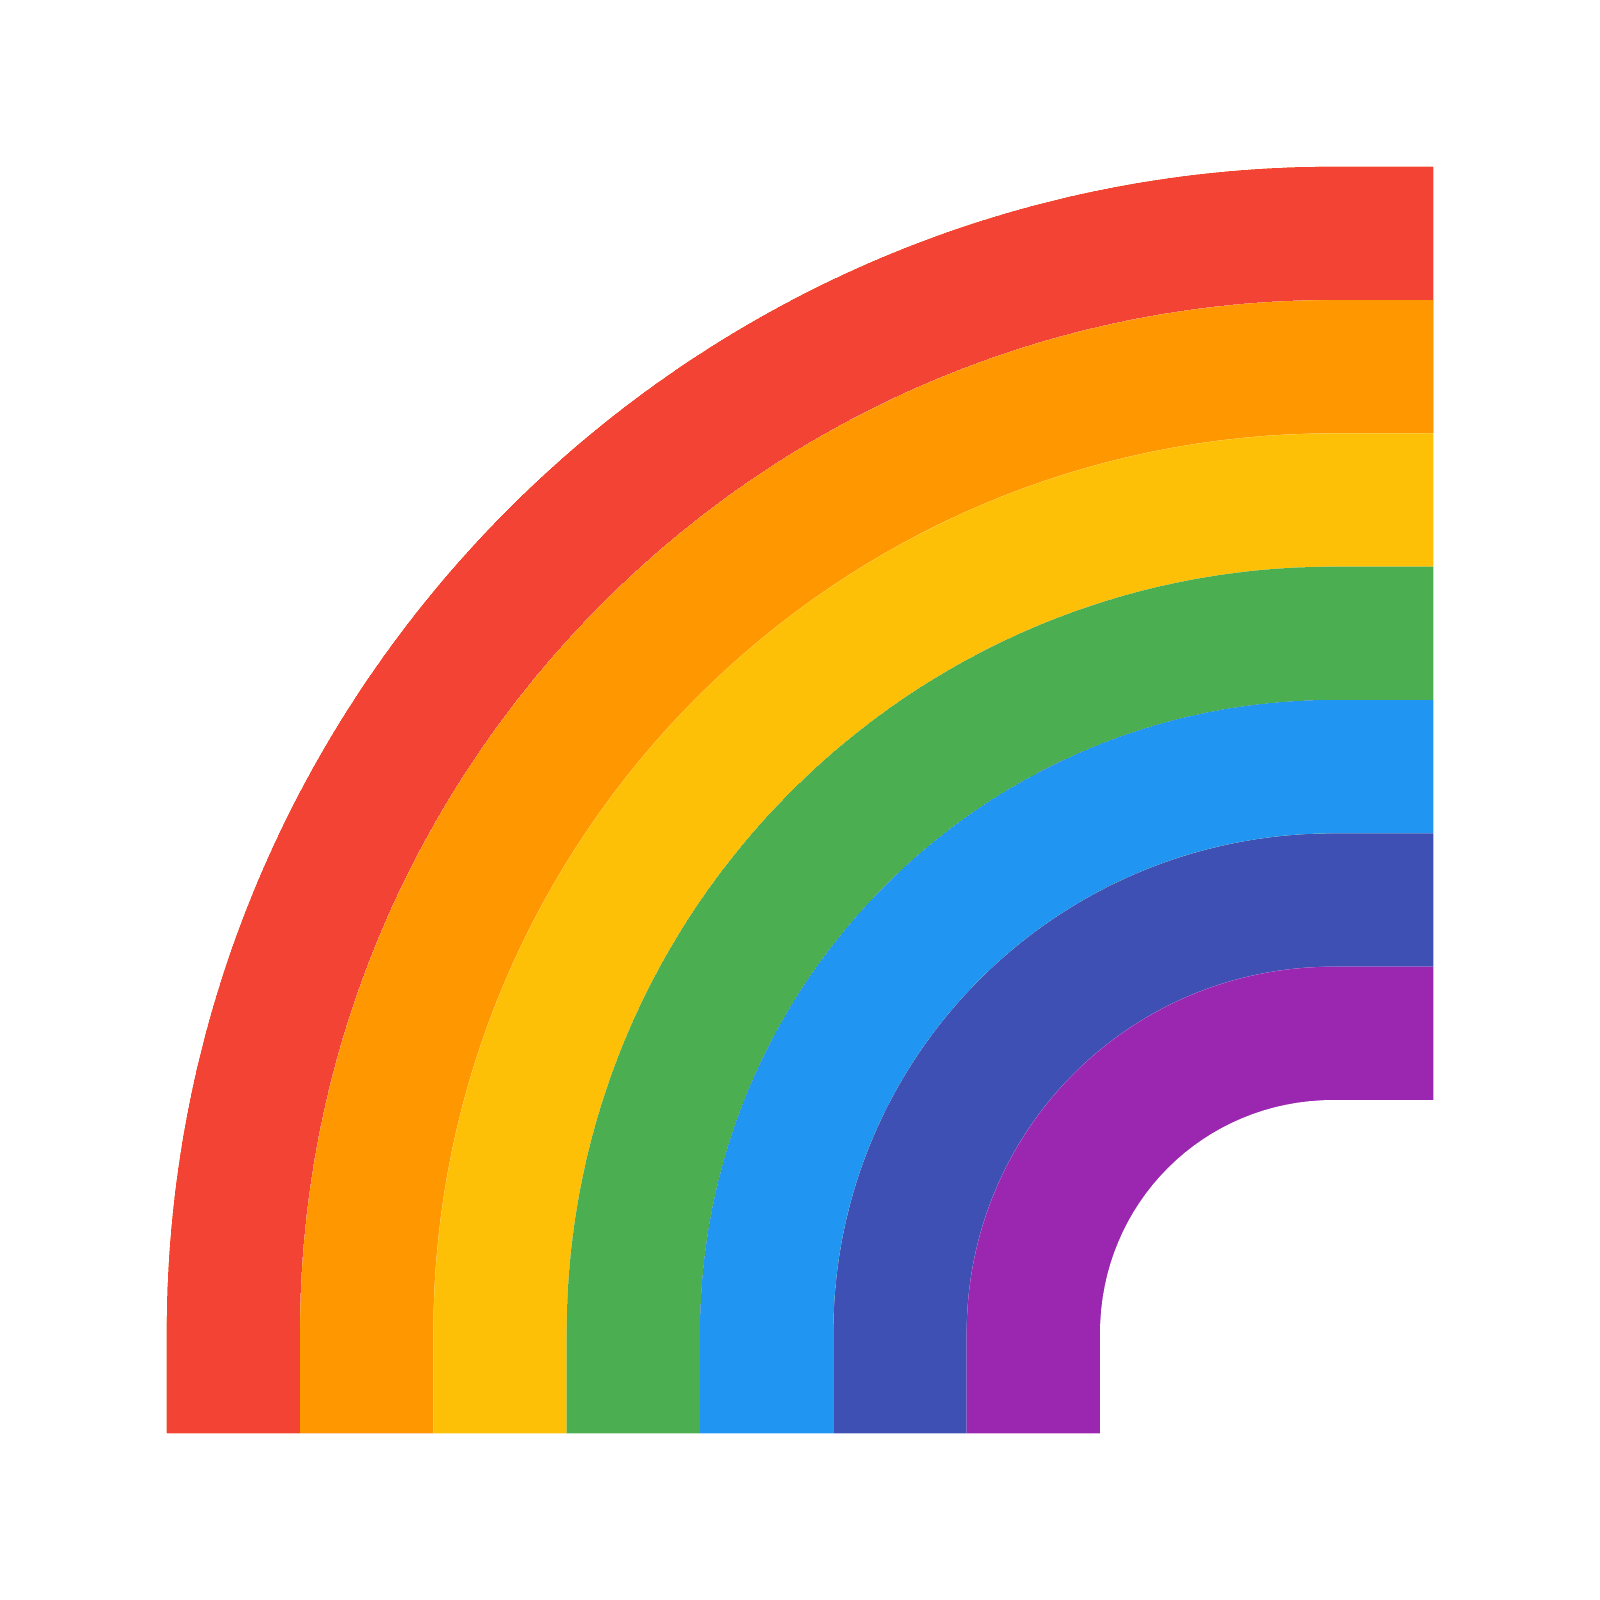 Rainbow png tumblr. Icon free download and